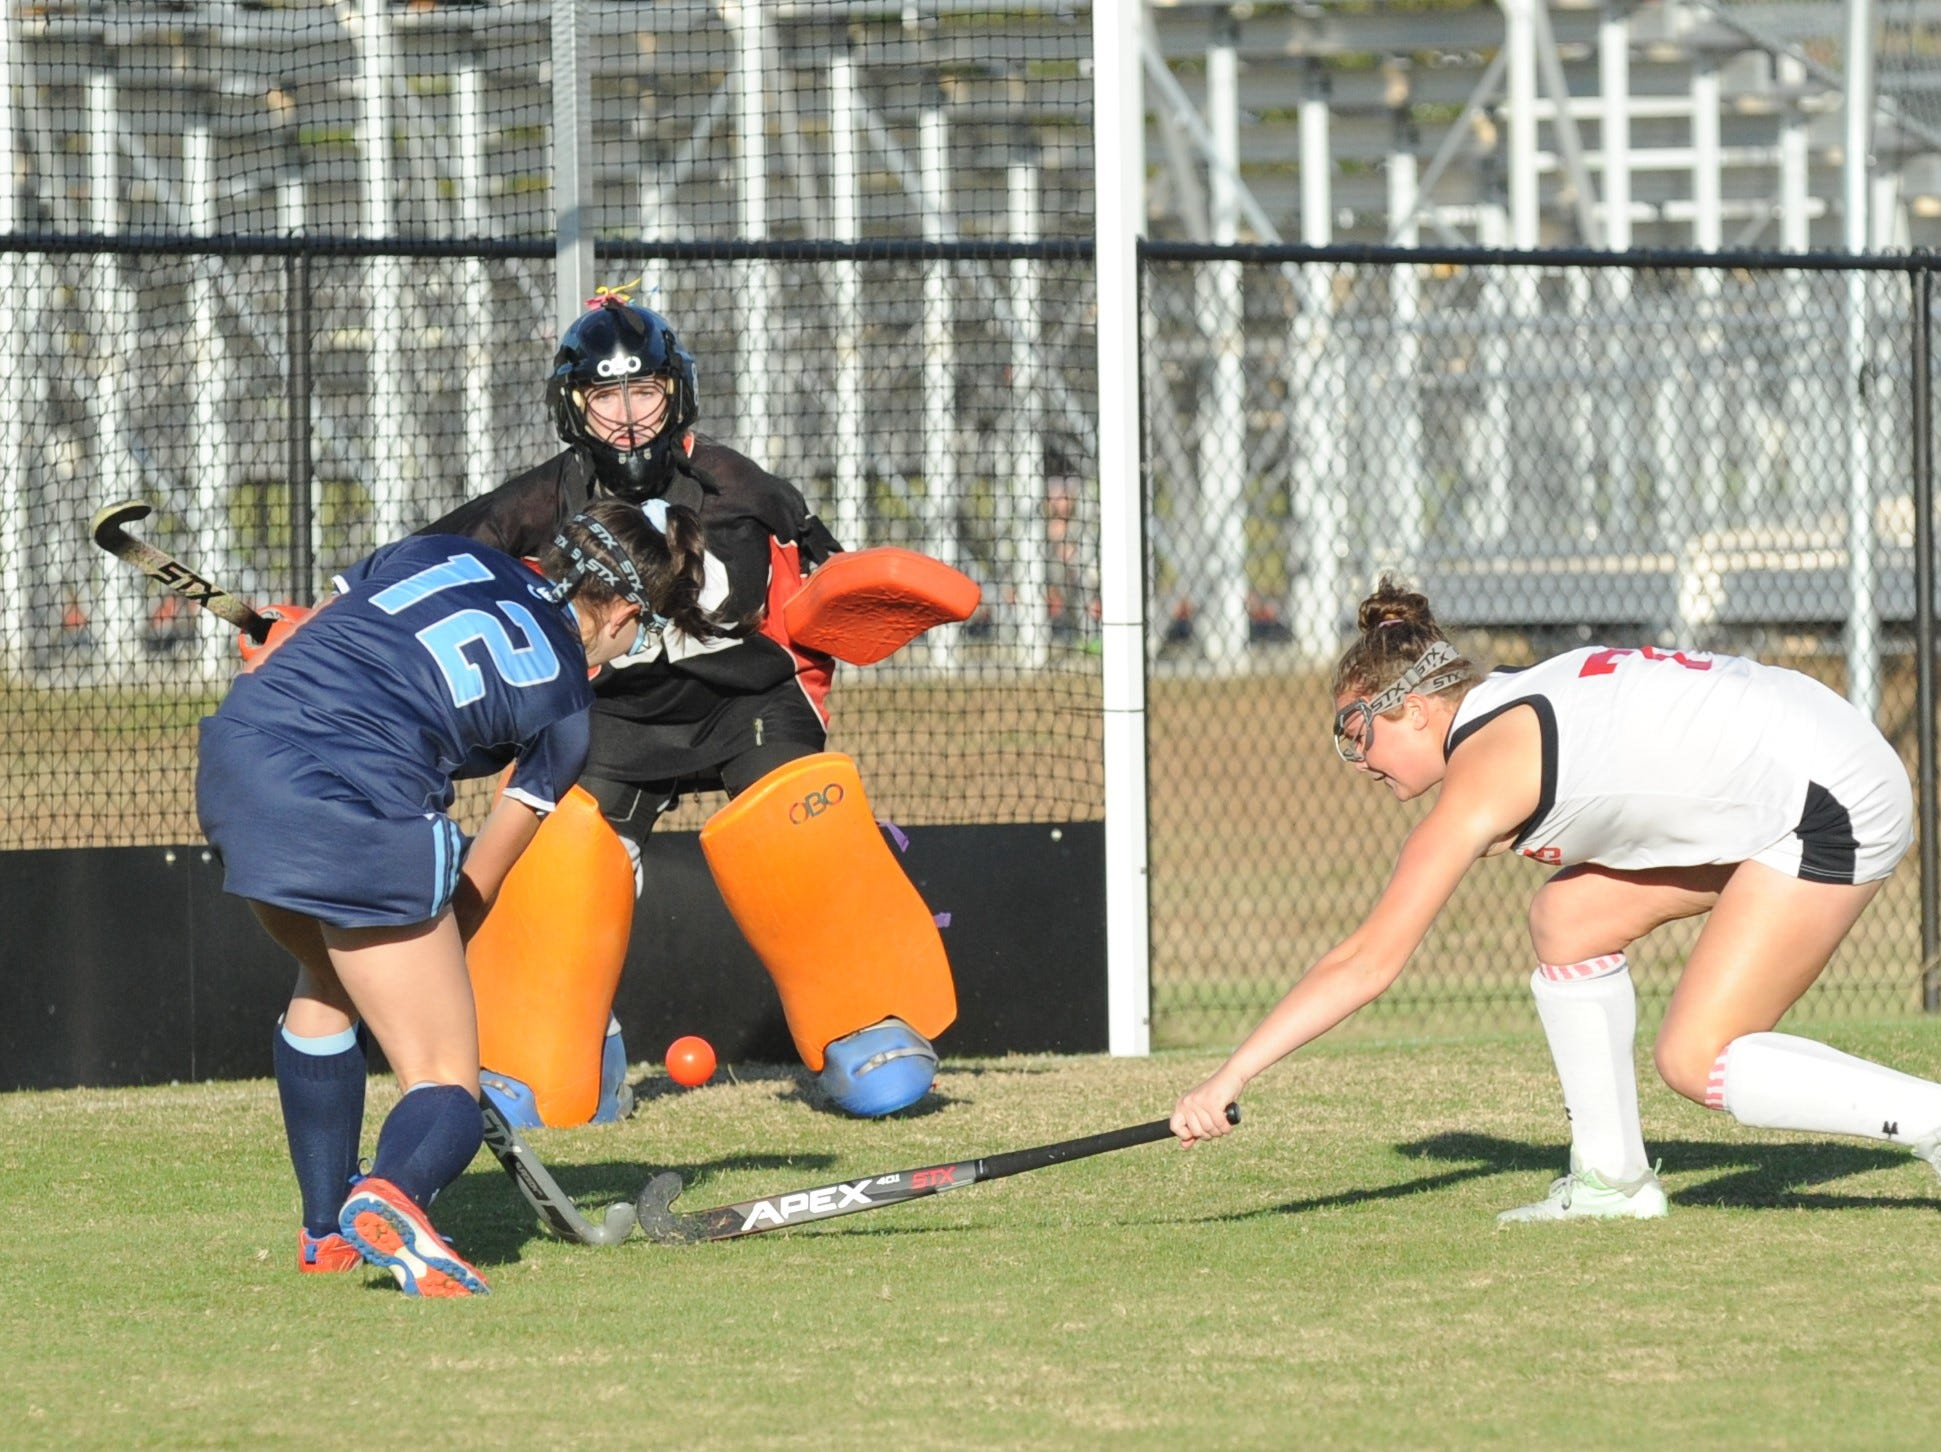 Bennett goalie Elizabeth Rogers defends a shot by Chesapeake's Mason Frechtel on Monday, Oct. 29, 2018 in 3A playoff action. Chesapeake won the game, 1-0.